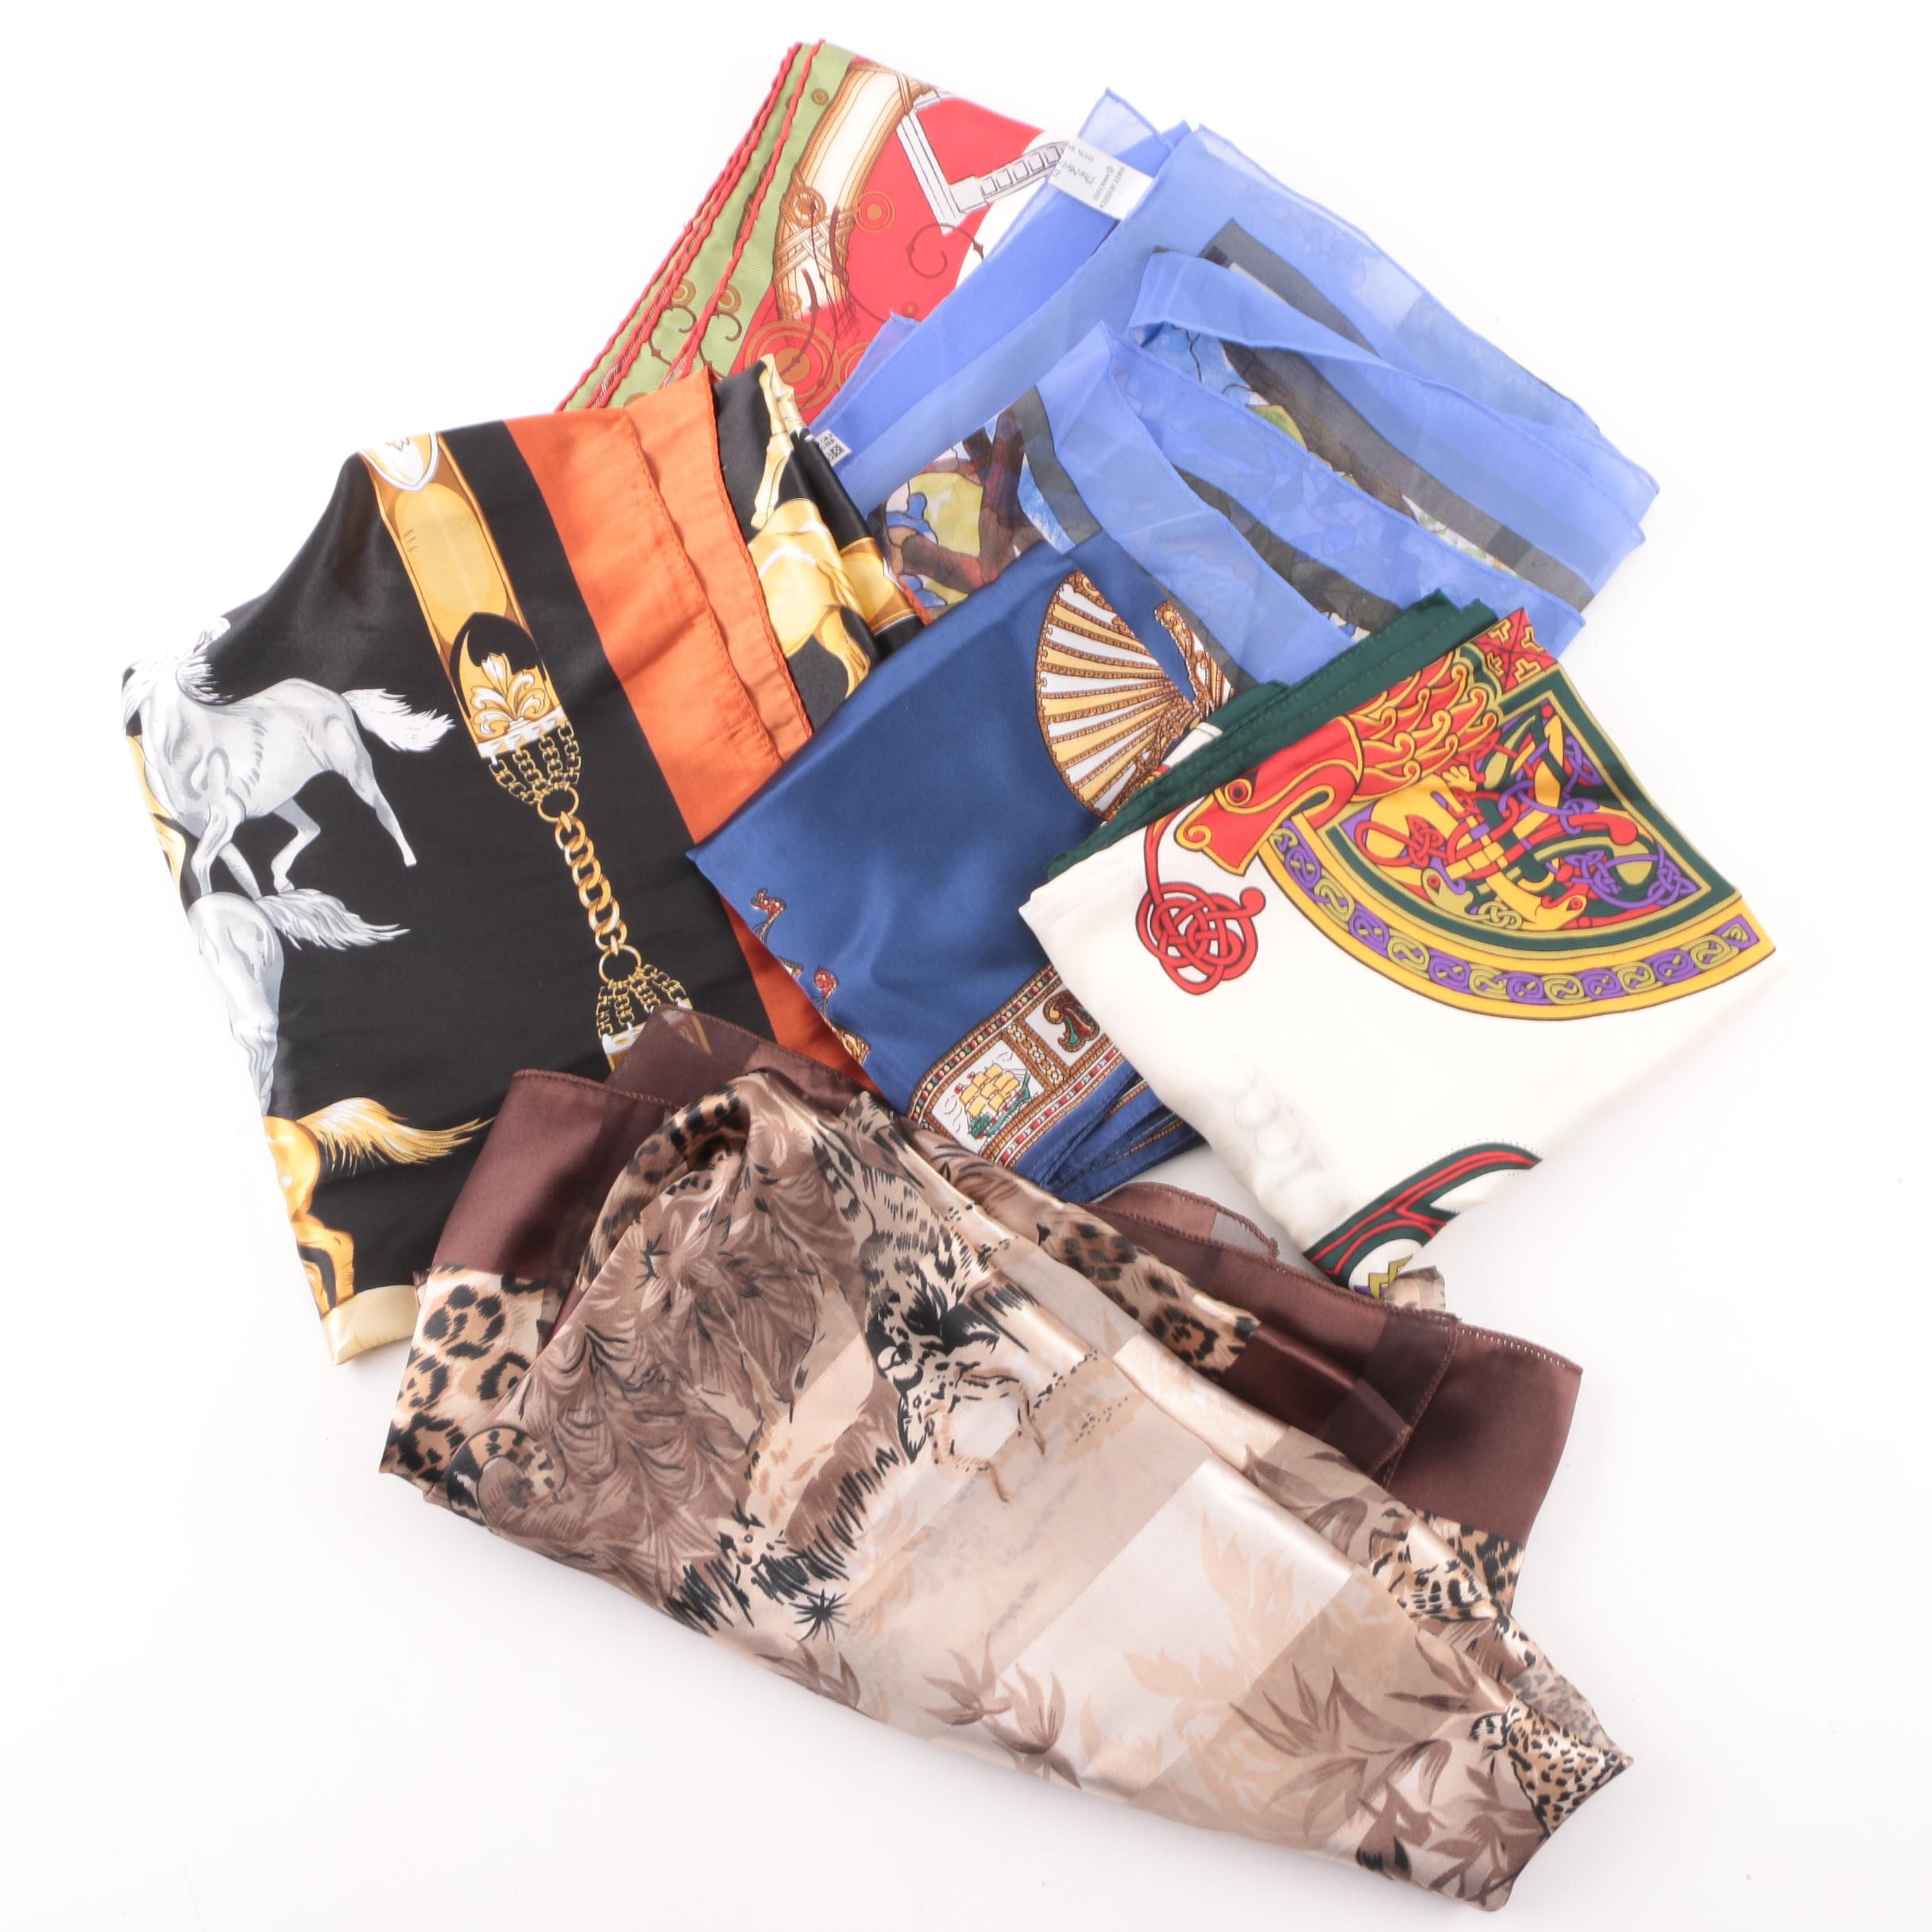 Fashion Scarves including Gump's and Metropolitan Museum of Art